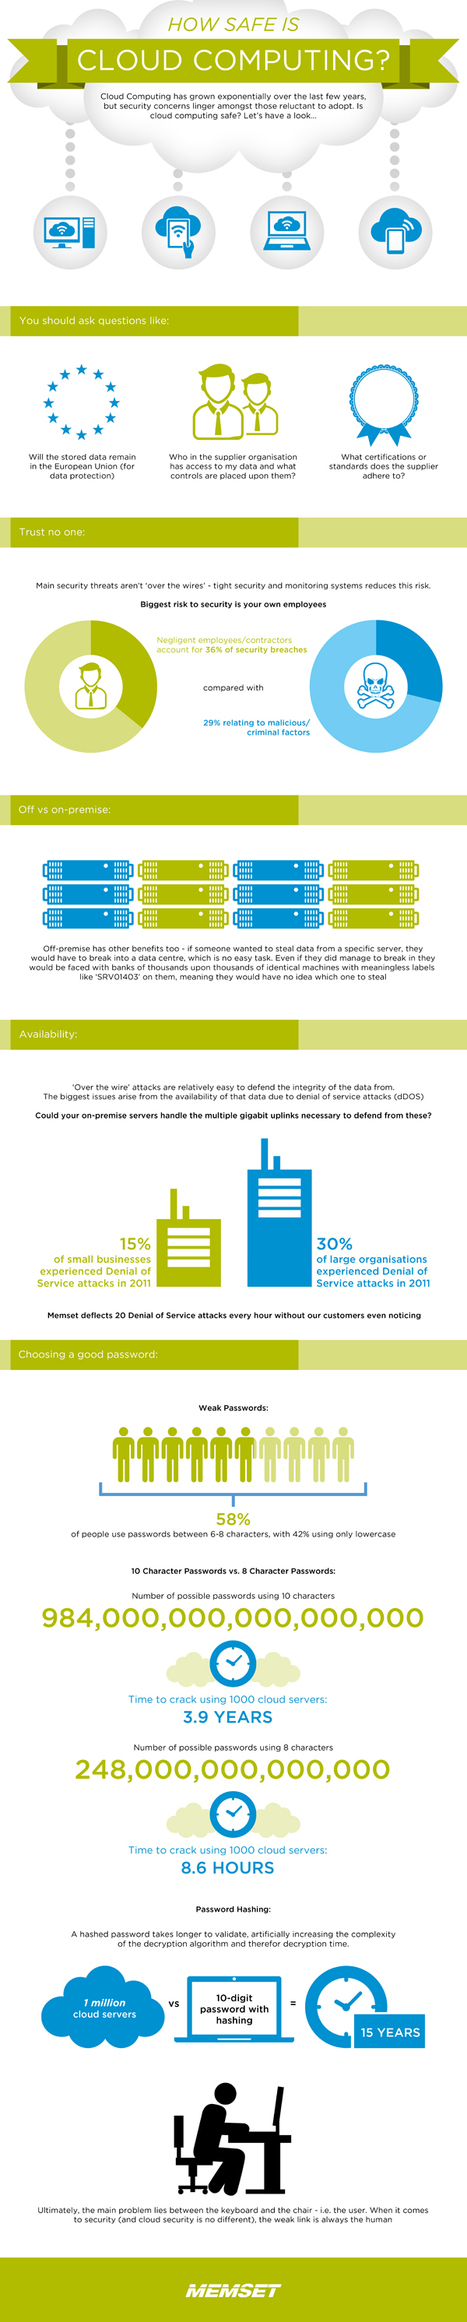 INFOGRAPHIC: How Safe is The Cloud? | Mercado seguridad TIC | Scoop.it